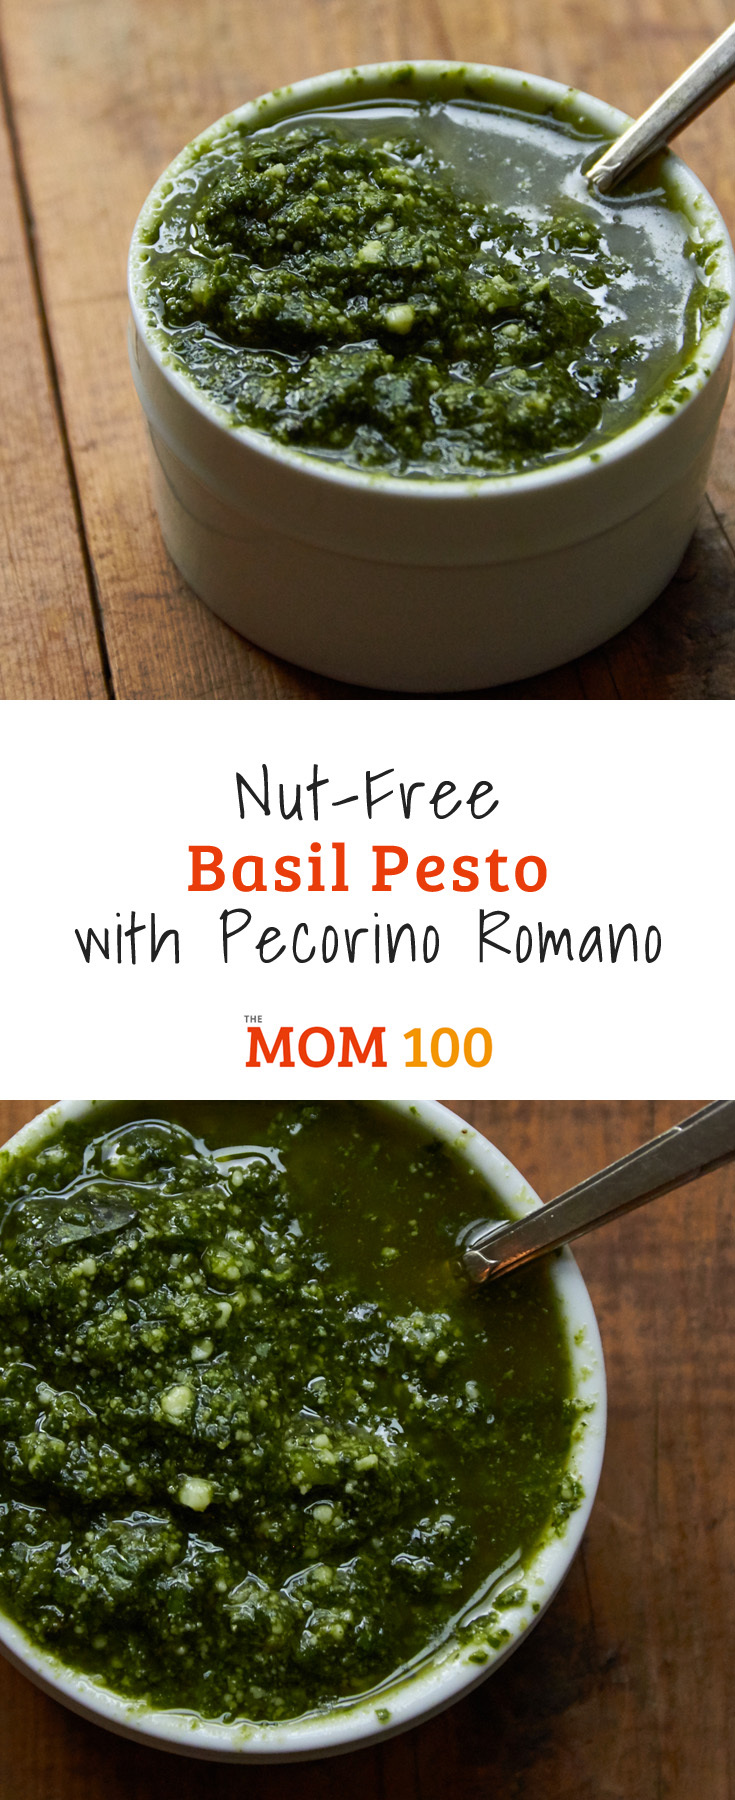 This Nut-Free Basil Pesto with Pecorino Romano recipe is for all the basil pesto lovers out there, and so easy to make in the food processor